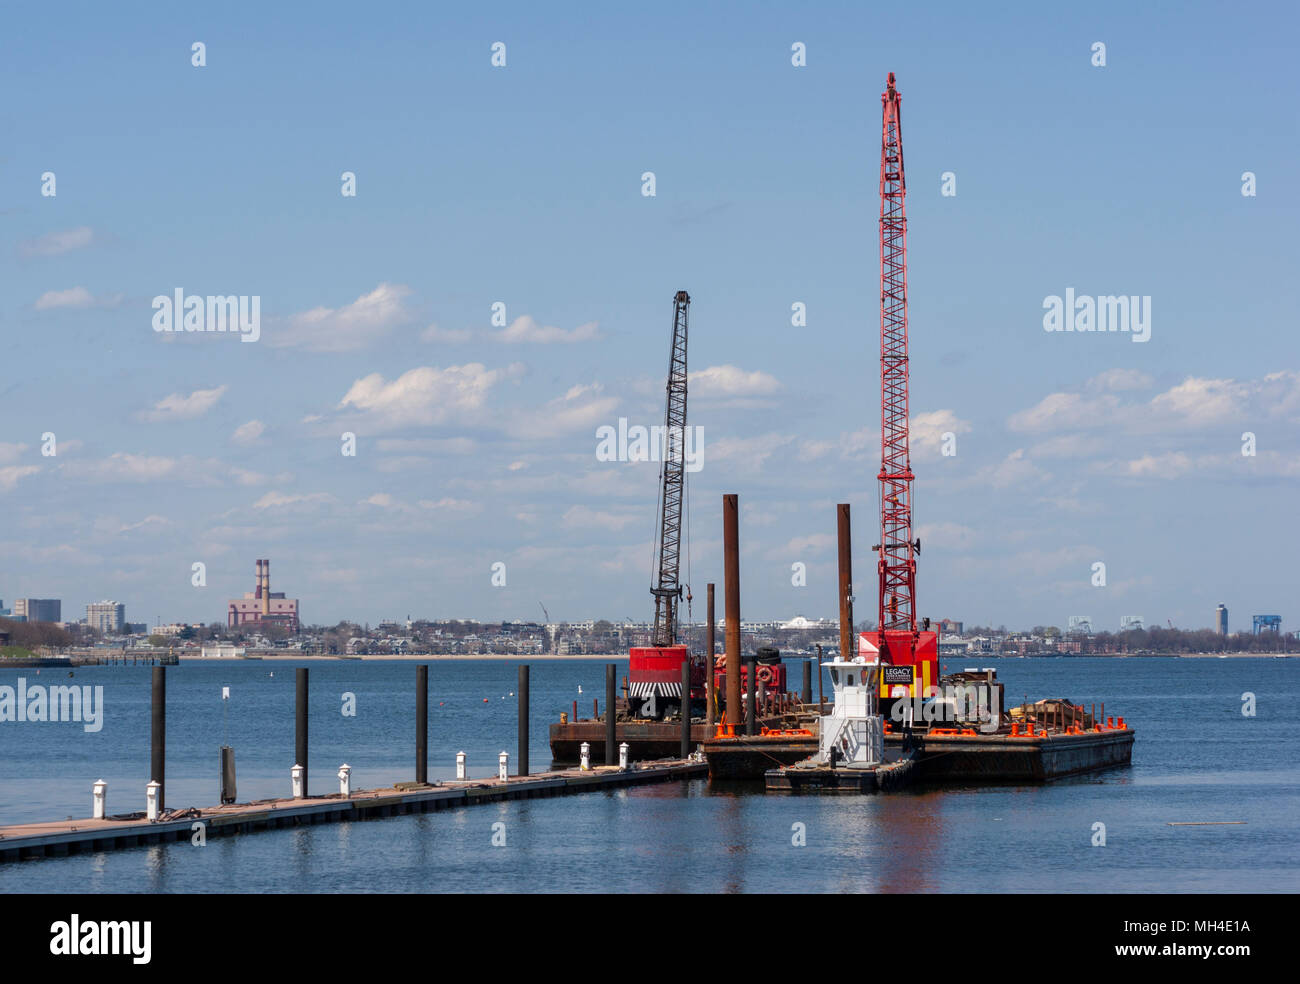 Pile Driving Stock Photos & Pile Driving Stock Images - Alamy